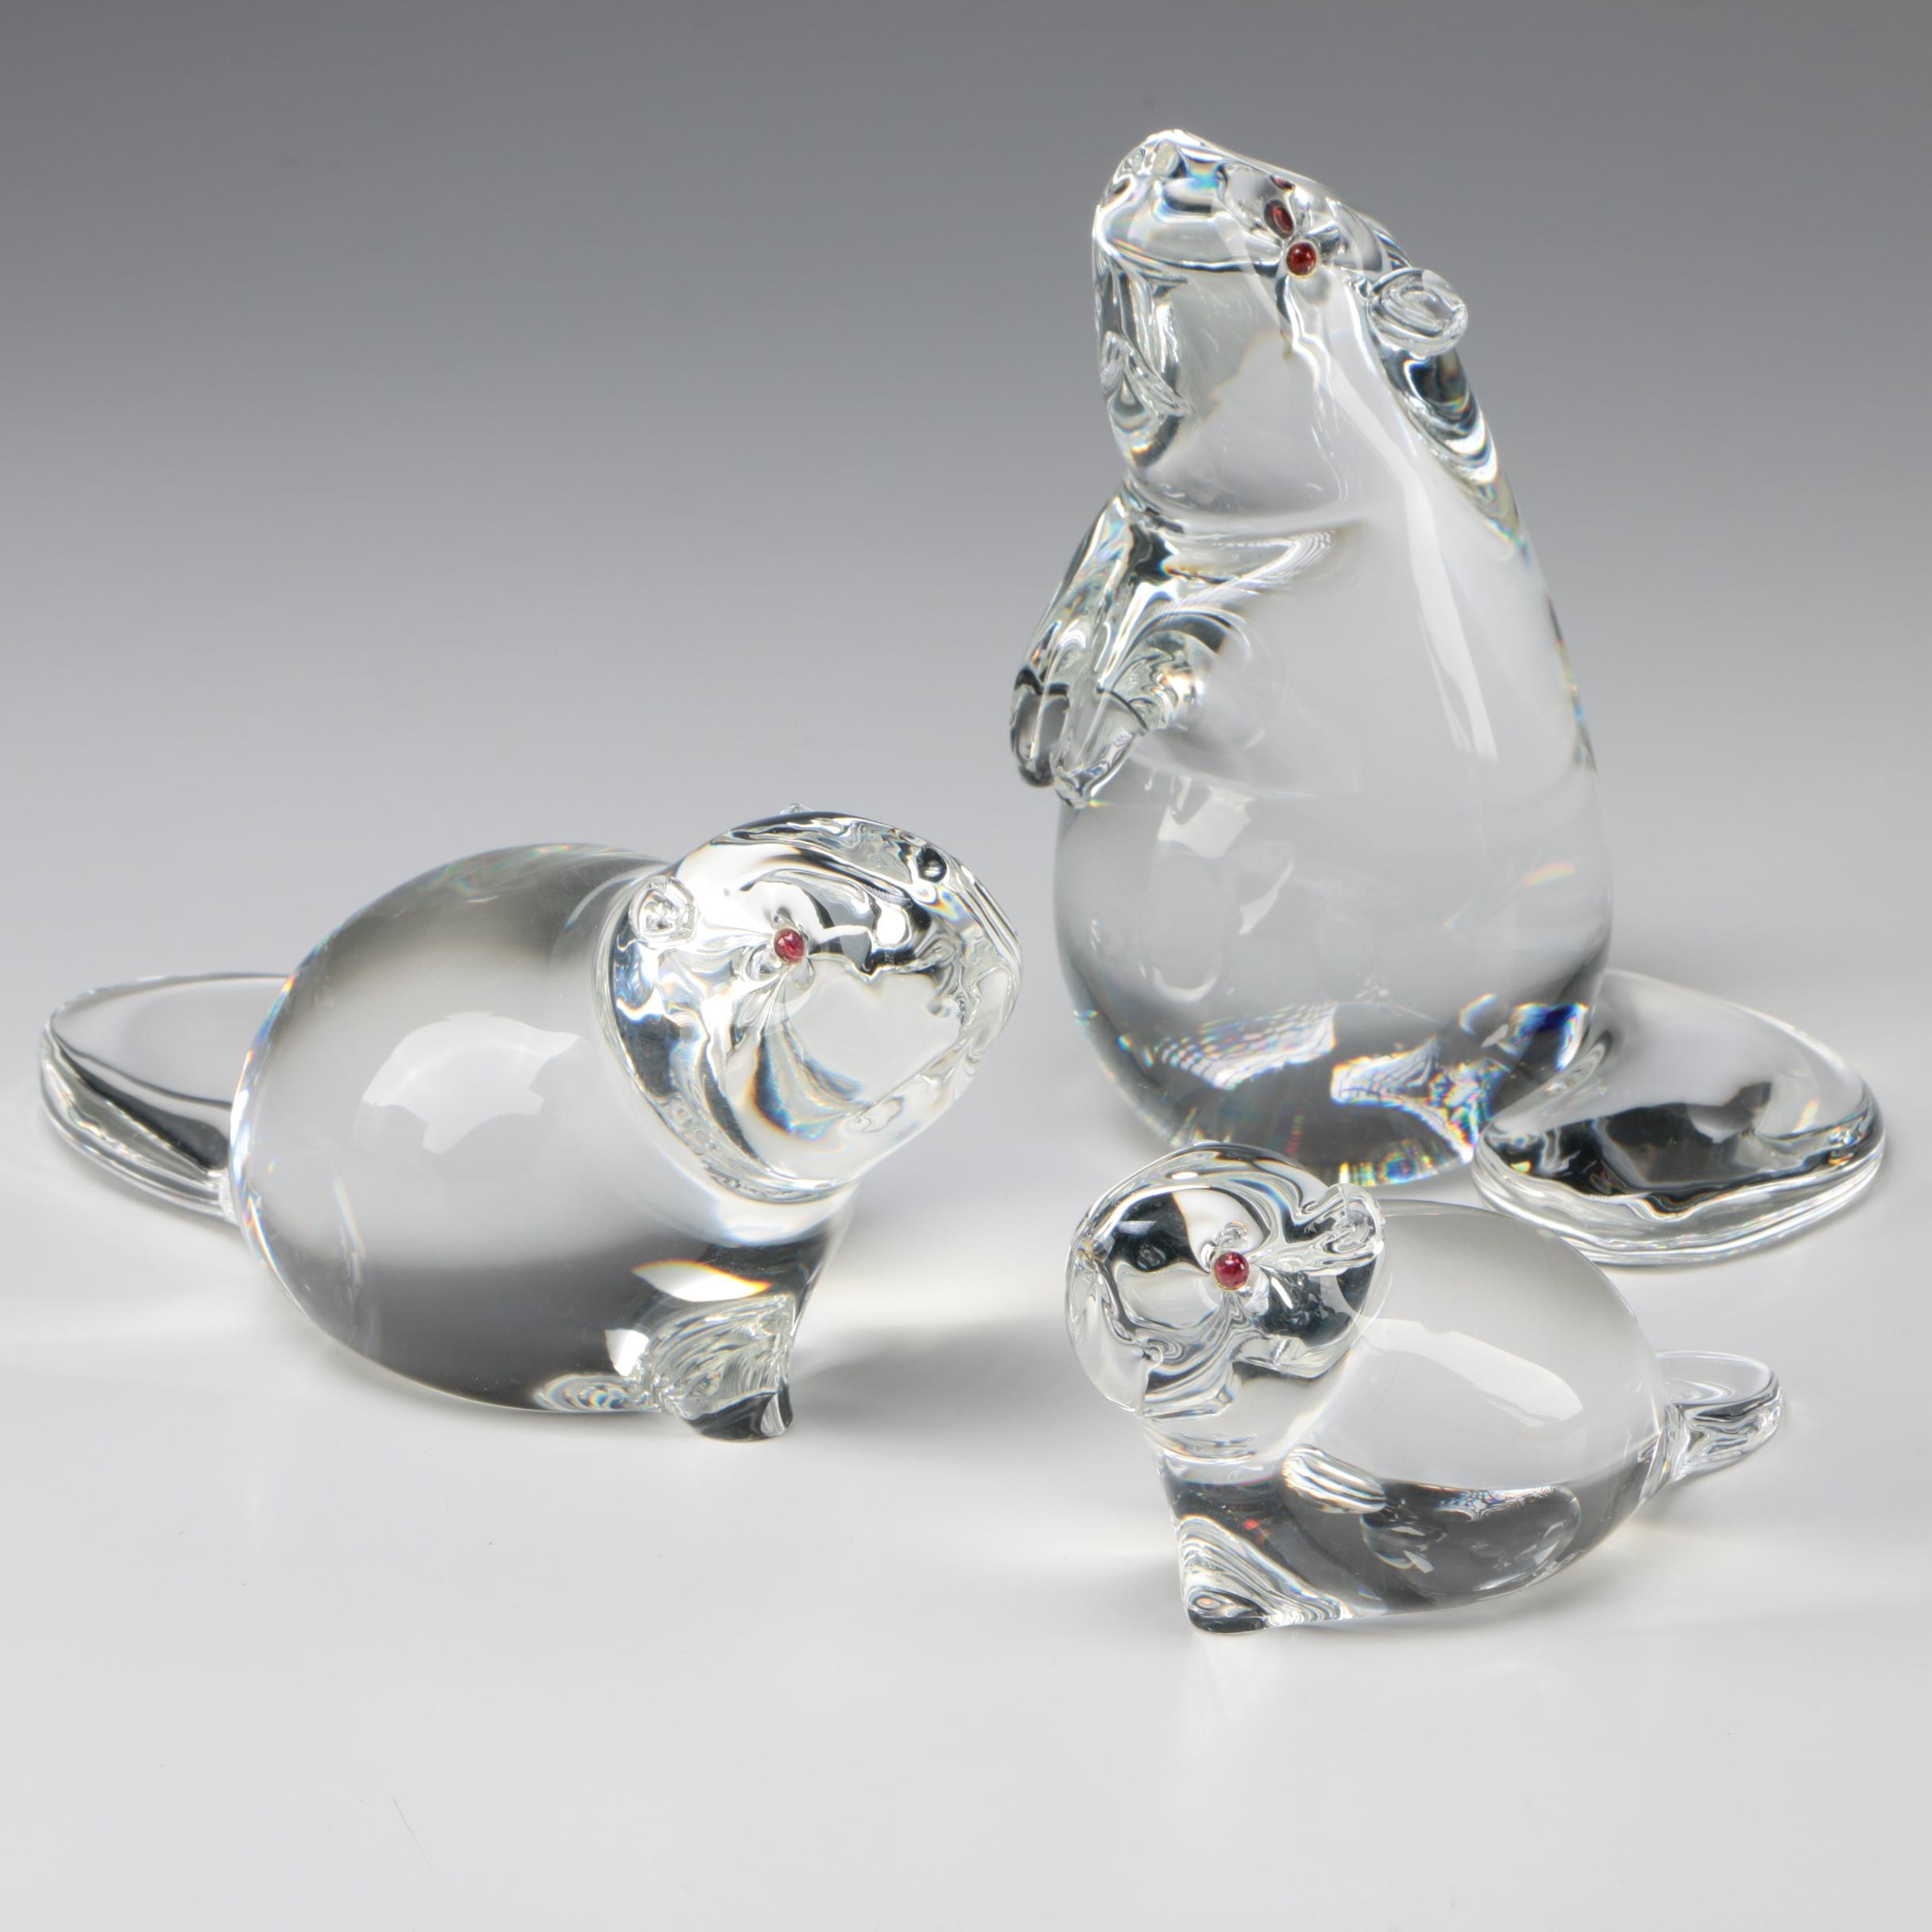 "Steuben Art Glass ""Beaver"" Figurines Designed by Lloyd Atkins, 1970s"